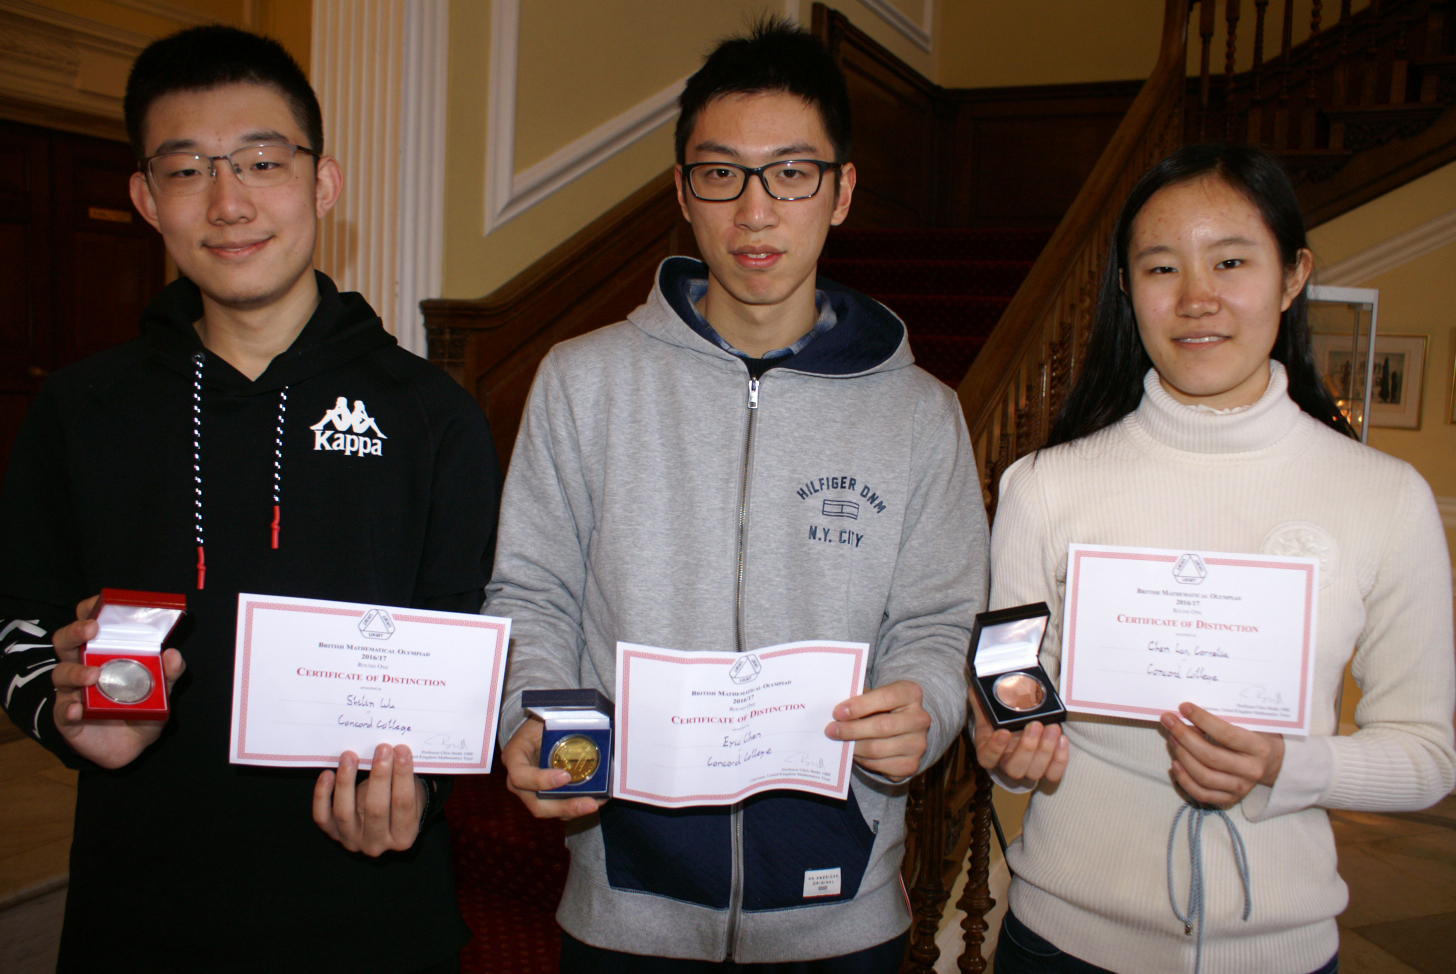 Concord maths students among the best in the country